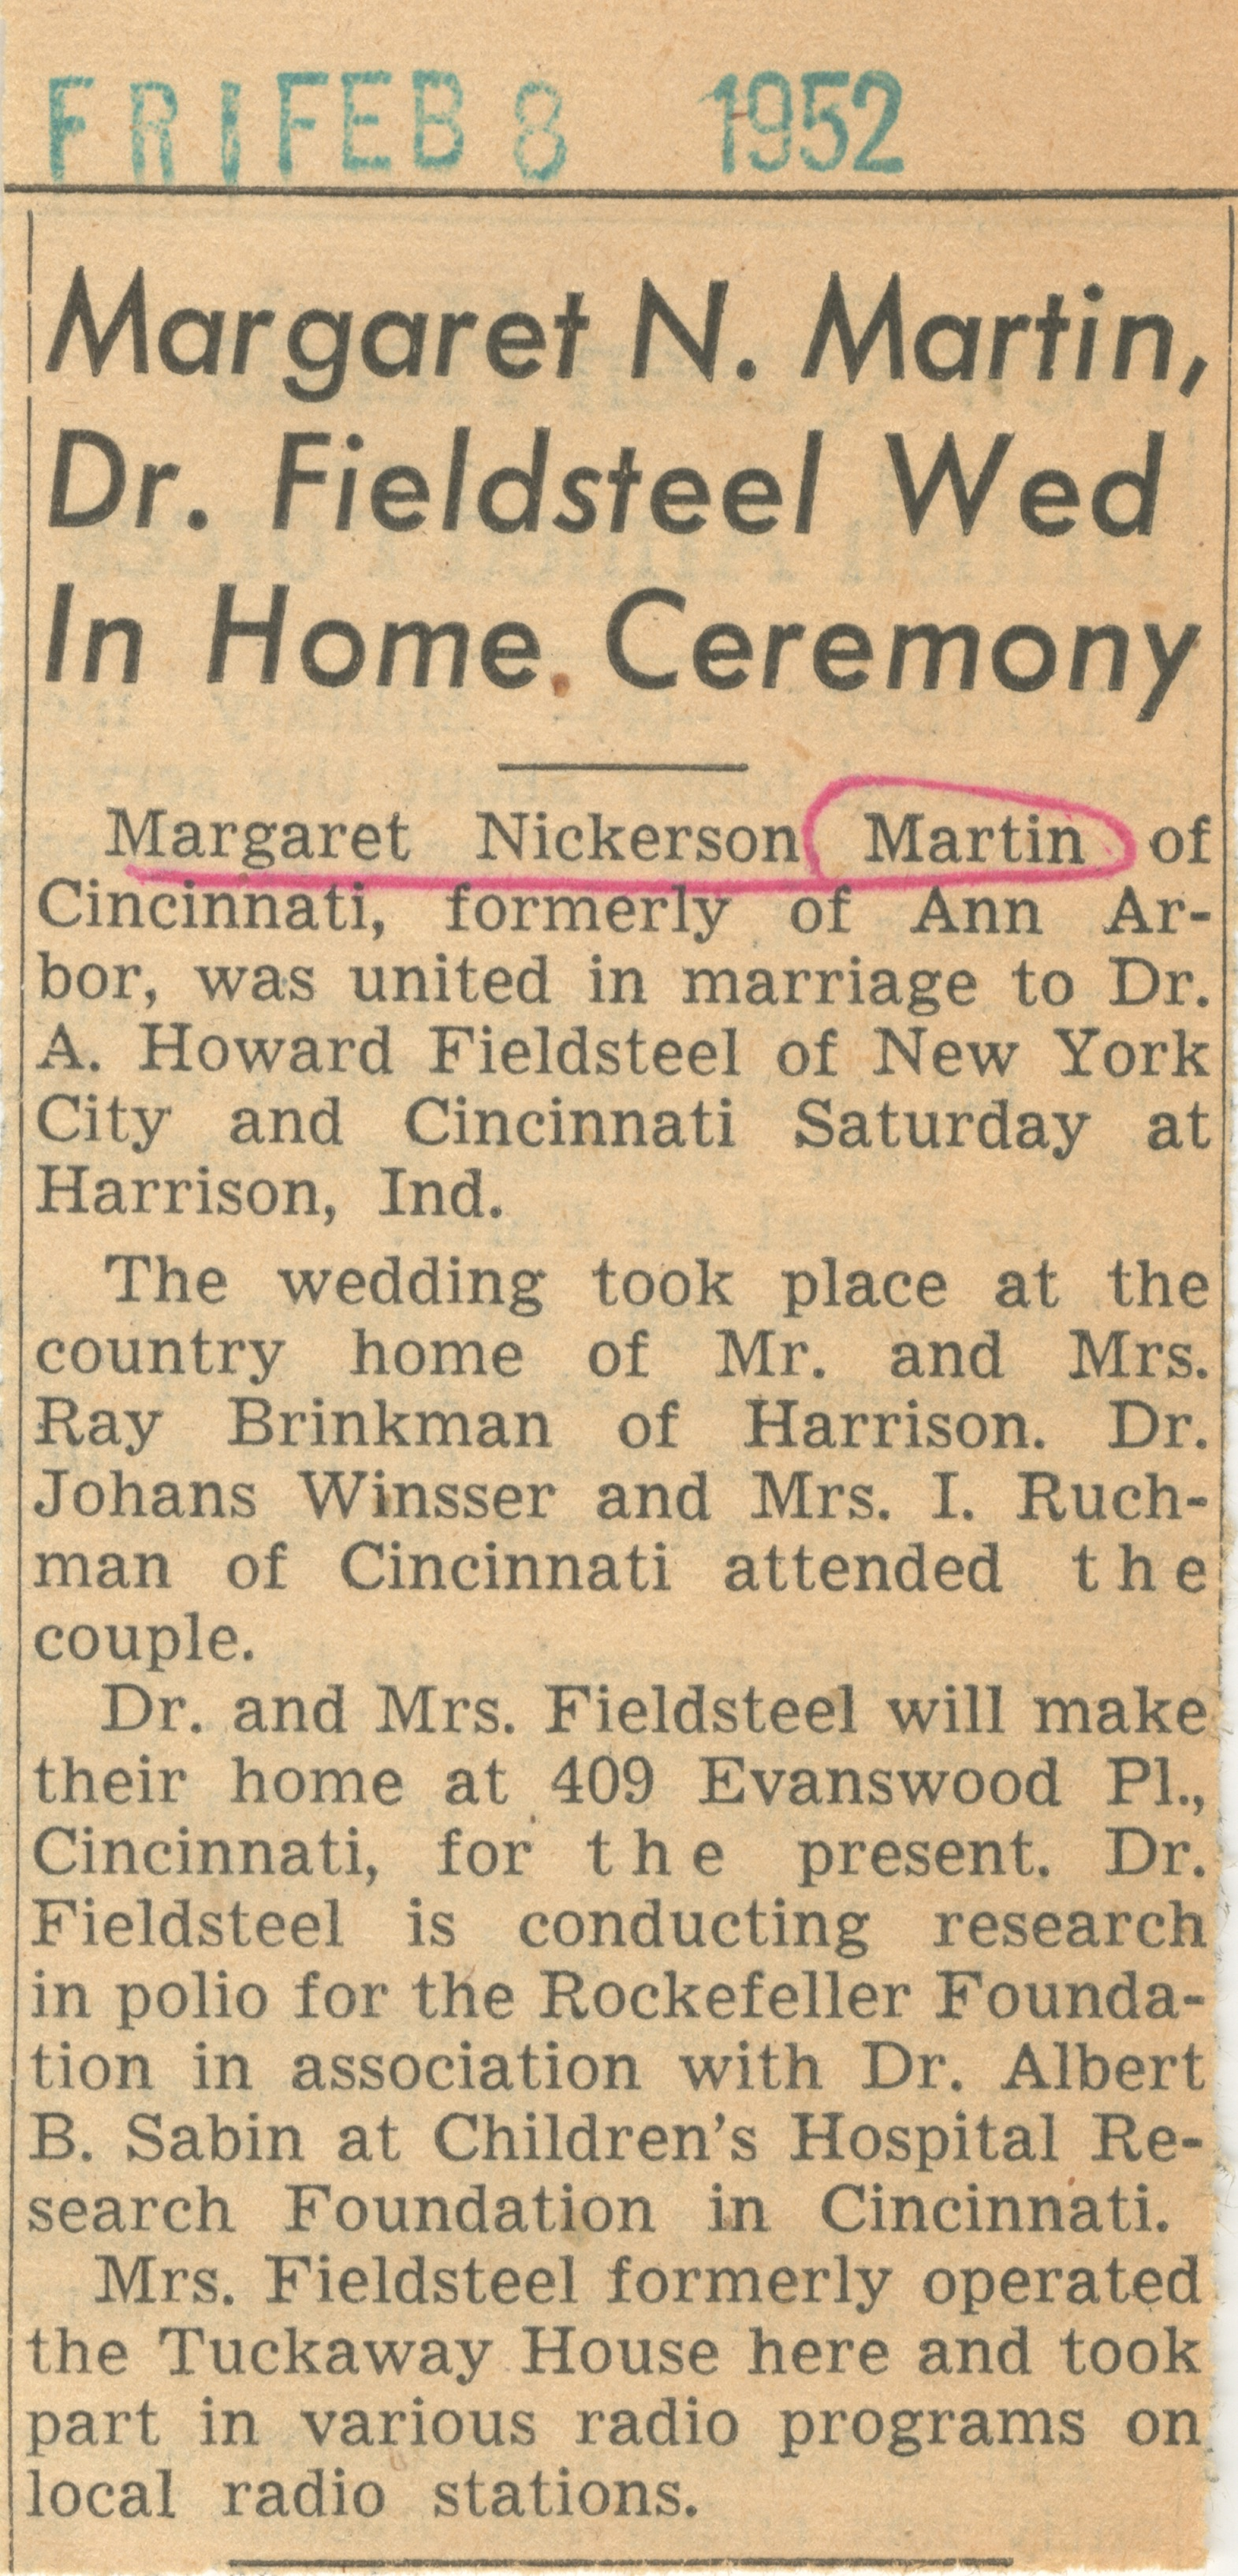 Margaret N. Martin, Dr. Fieldsteel Wed In Home Ceremony image